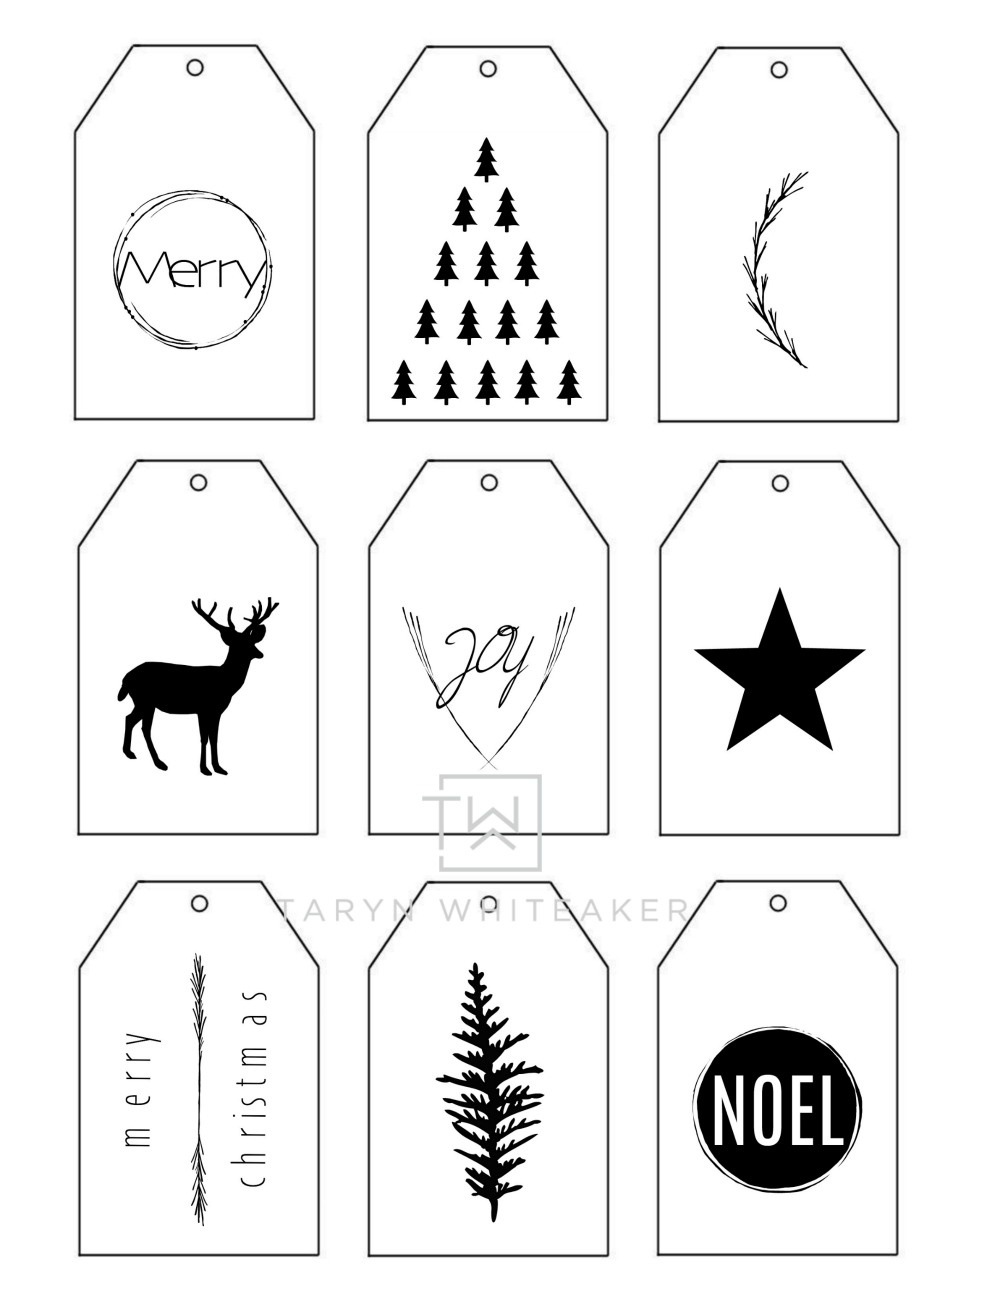 Printable Christmas Gift Tags - Taryn Whiteaker - Christmas Gift Tags Free Printable Black And White